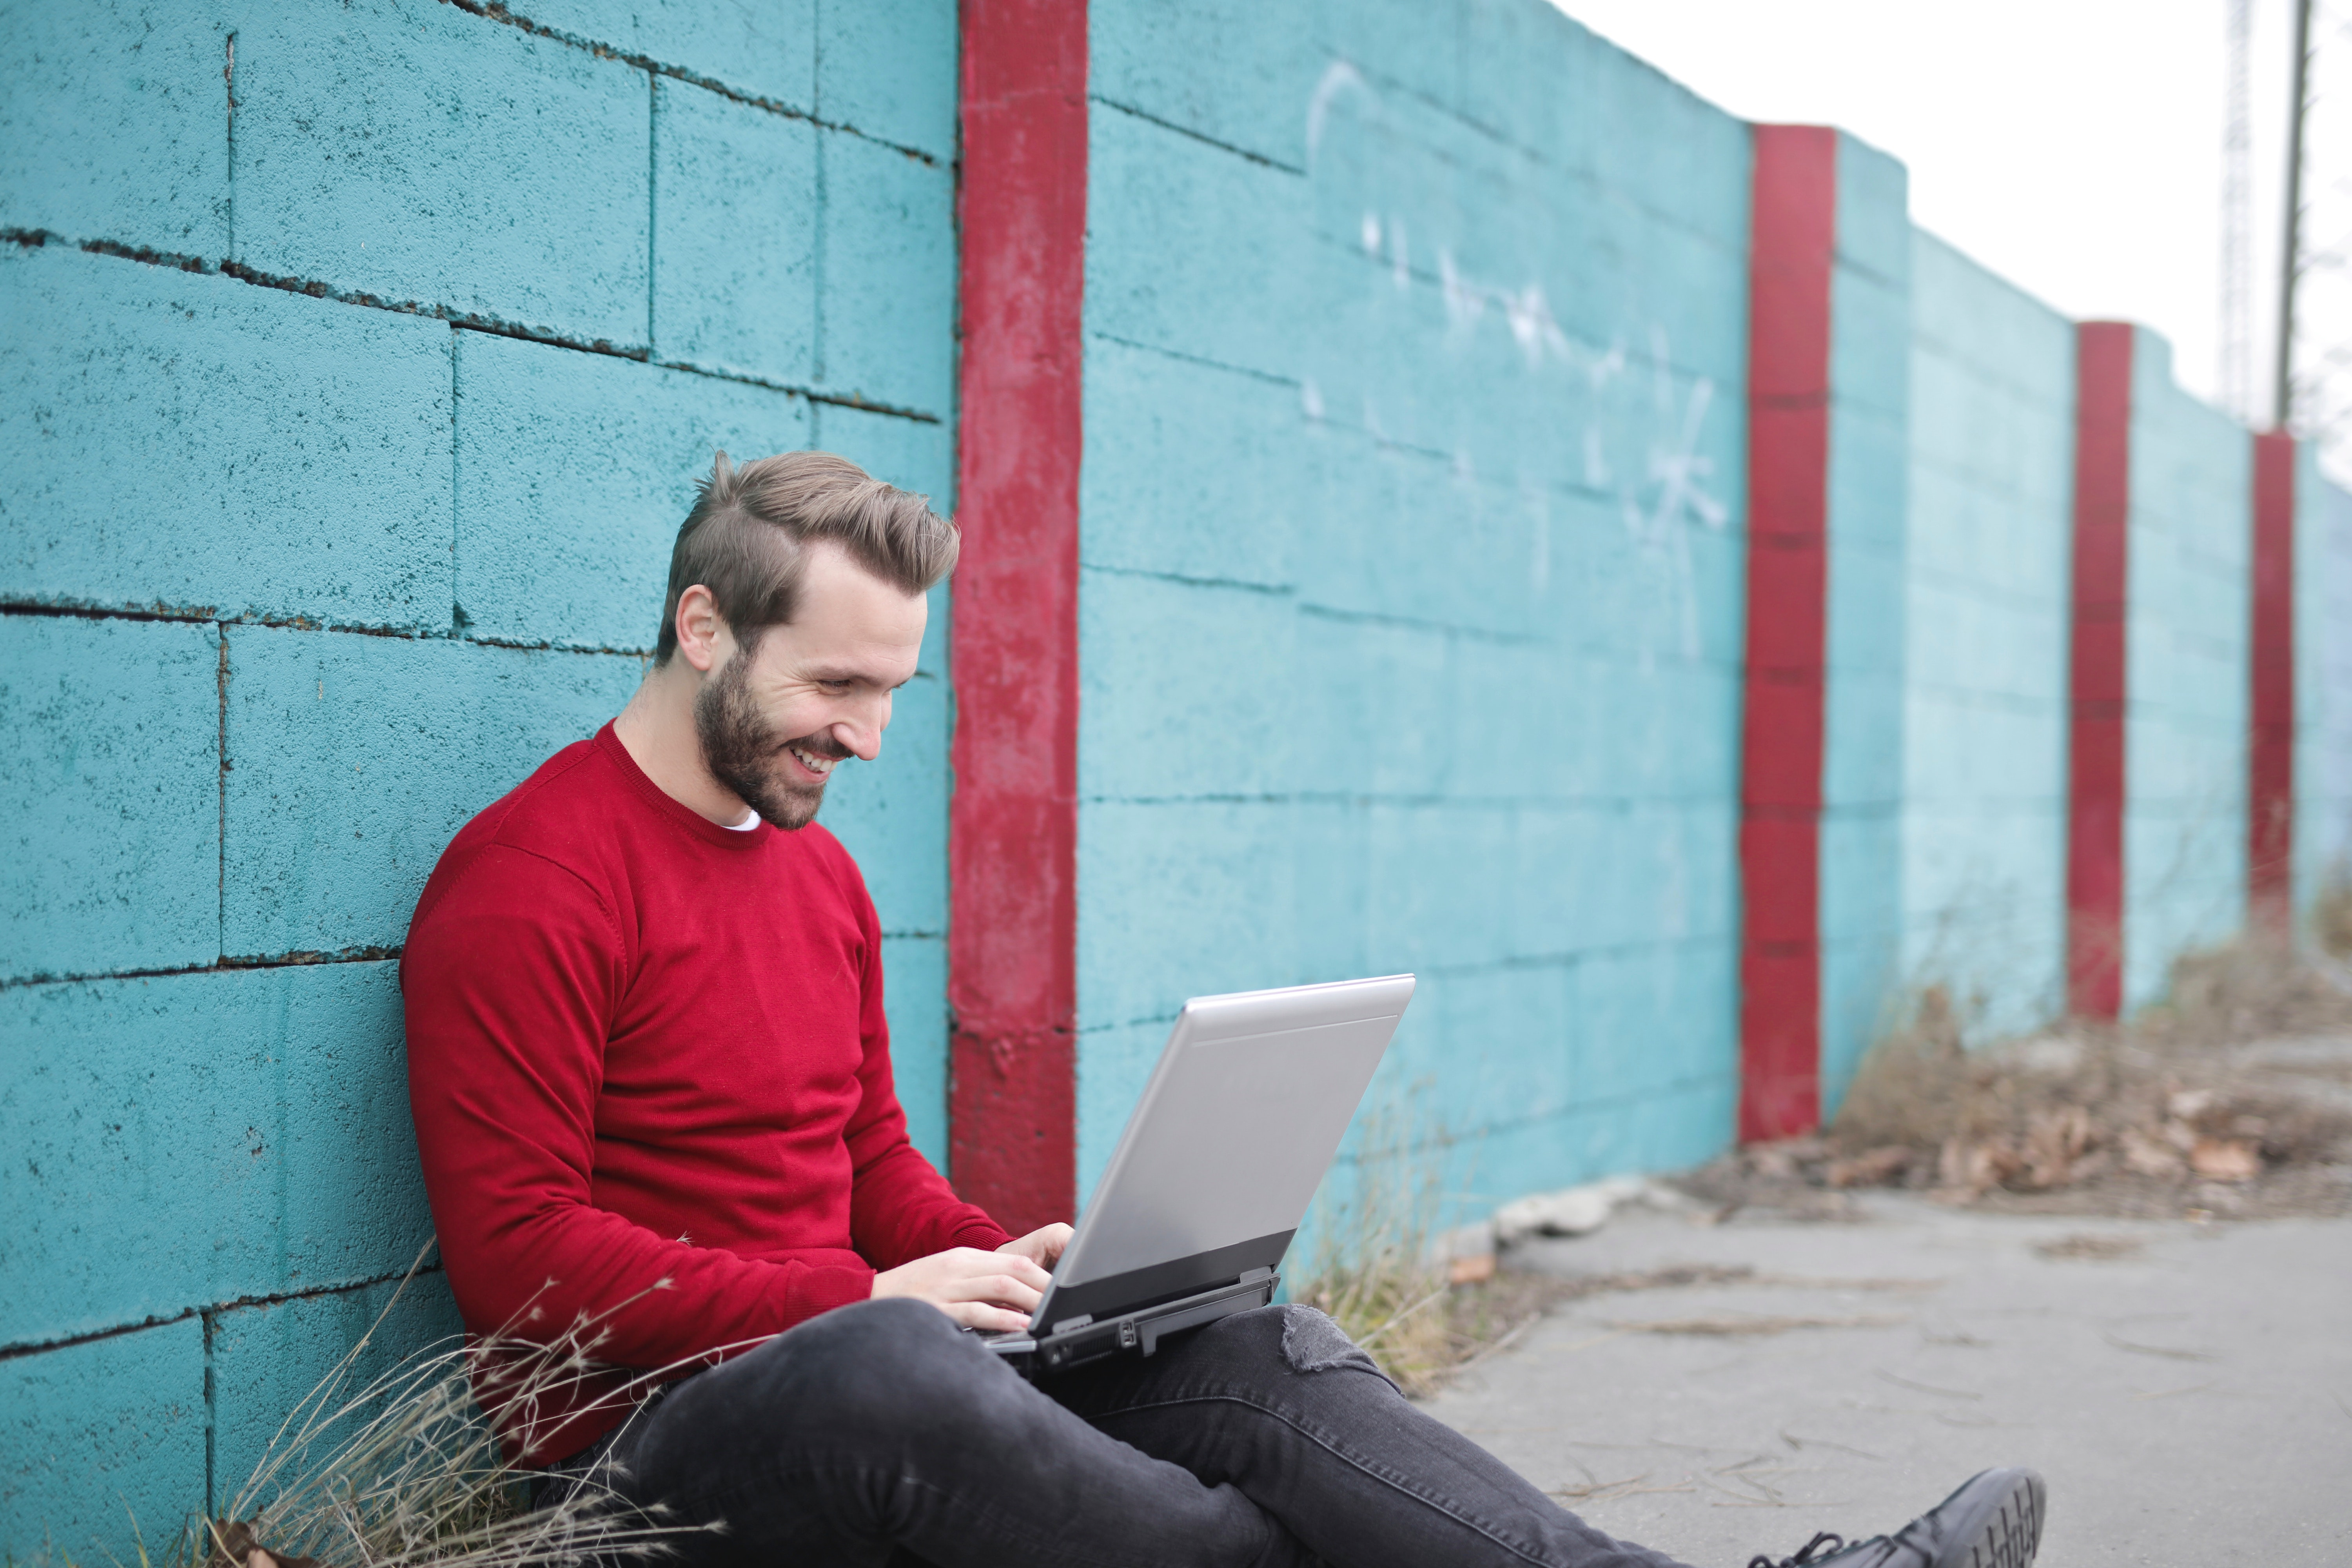 Man leaning against wall using laptop photo